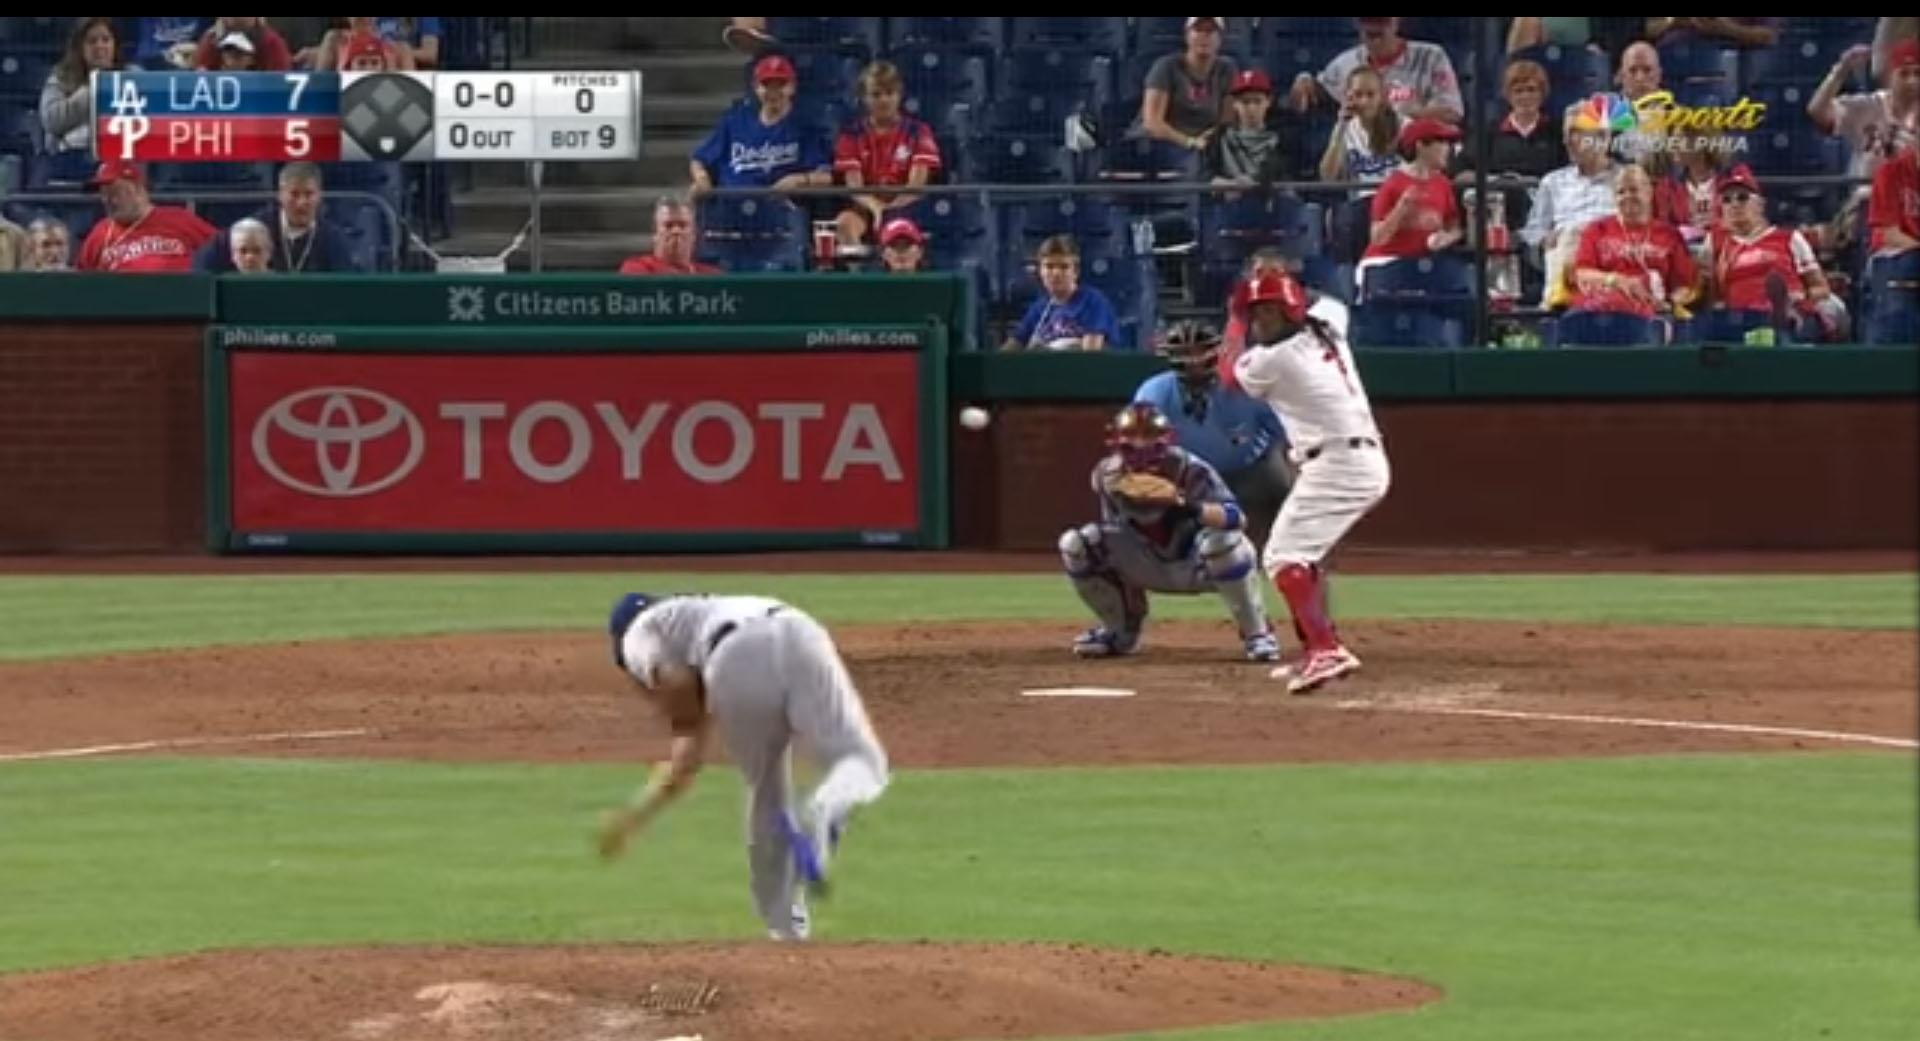 Maikel Franco had smashed a pitch into the stands at Dodger stadium